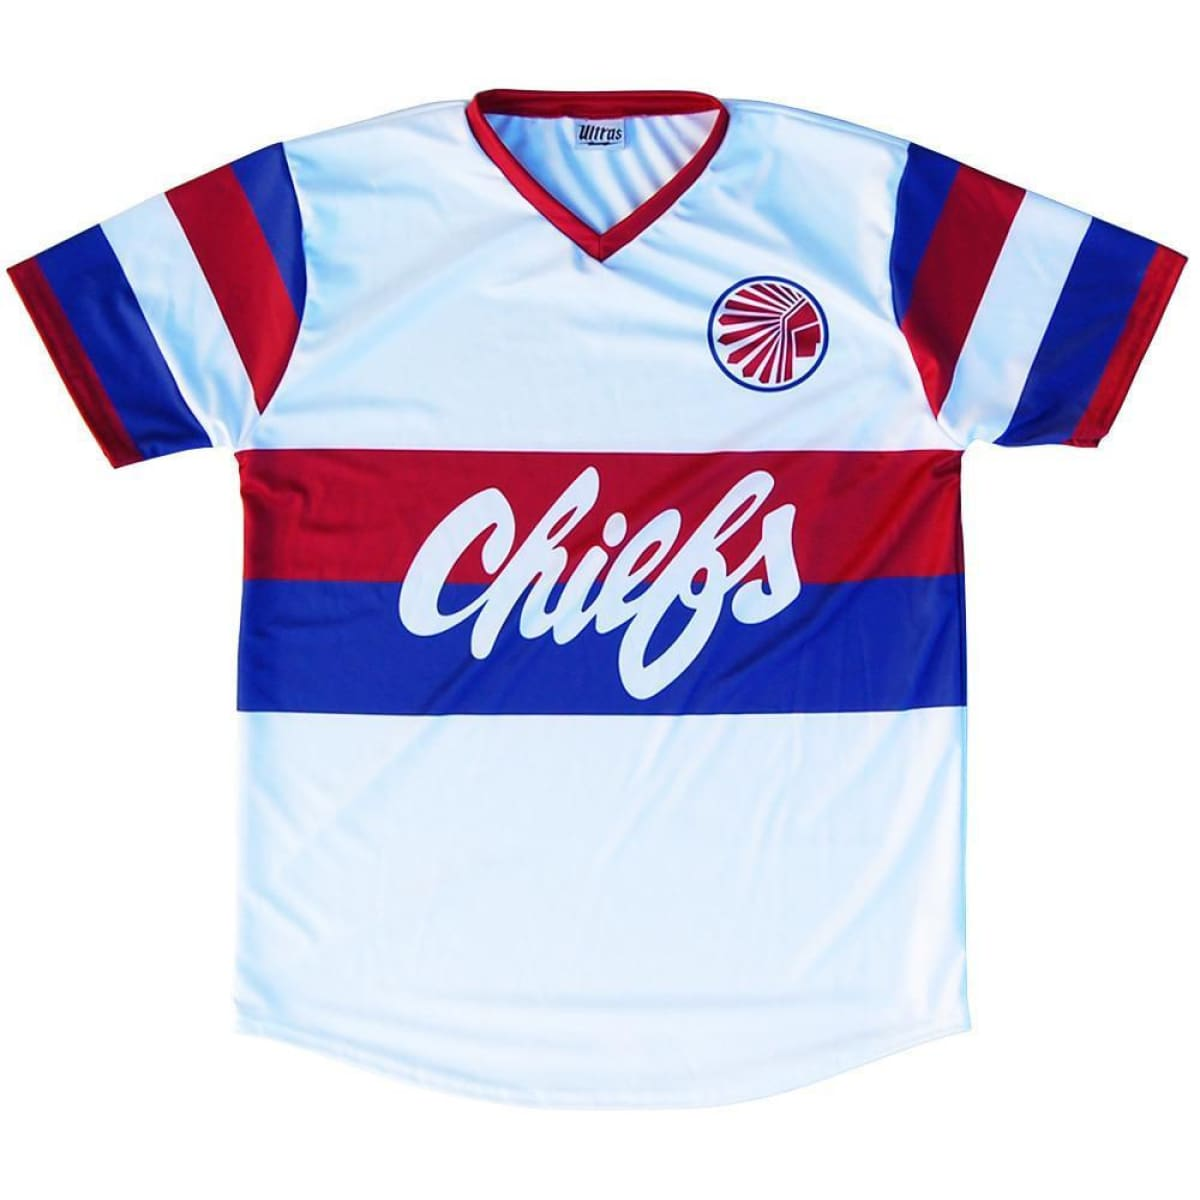 Atlanta Chiefs Retro Soccer Jersey - White / Toddler 1 / No - Ultras NASL Soccer Jerseys